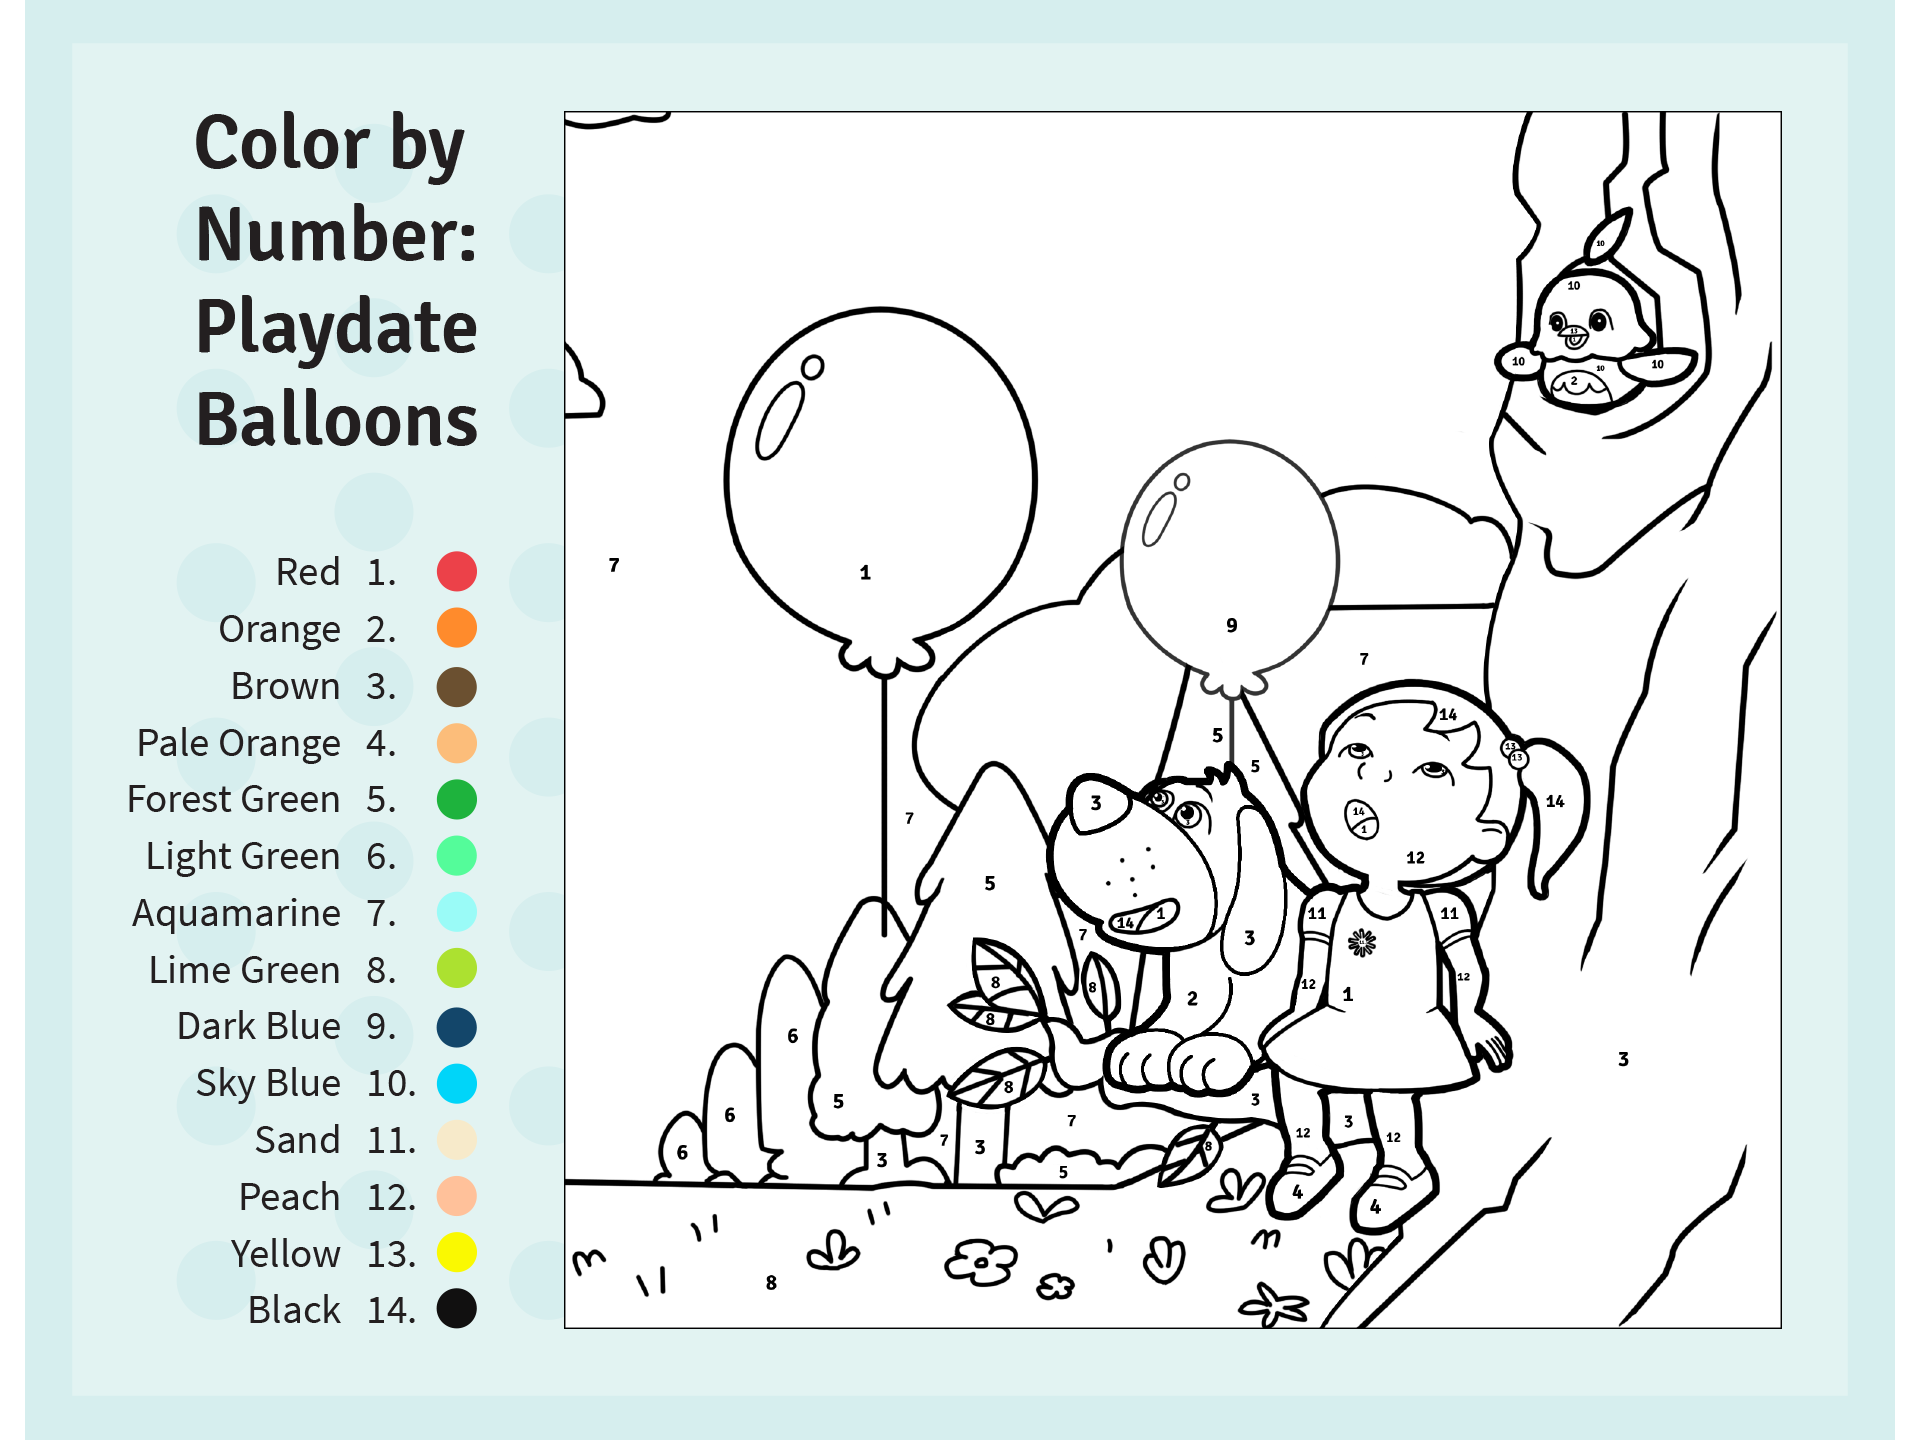 Color english worksheets - Playing With Balloons Color By Number Preschool Worksheet